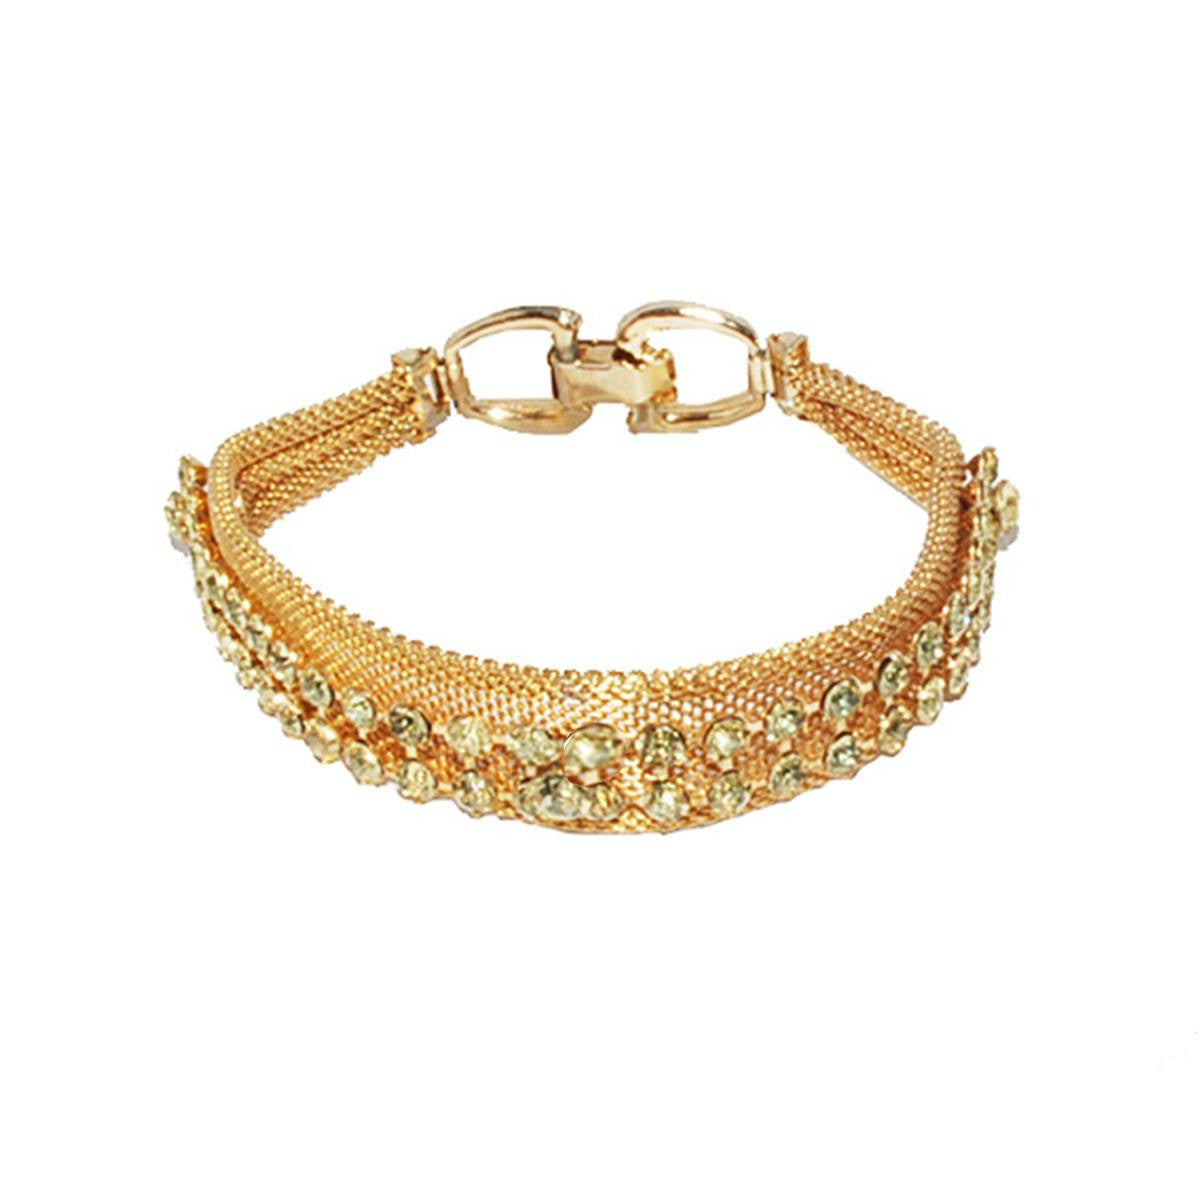 Yellow Rhinestone & Gold Mesh Bracelet, Dog Collar Style